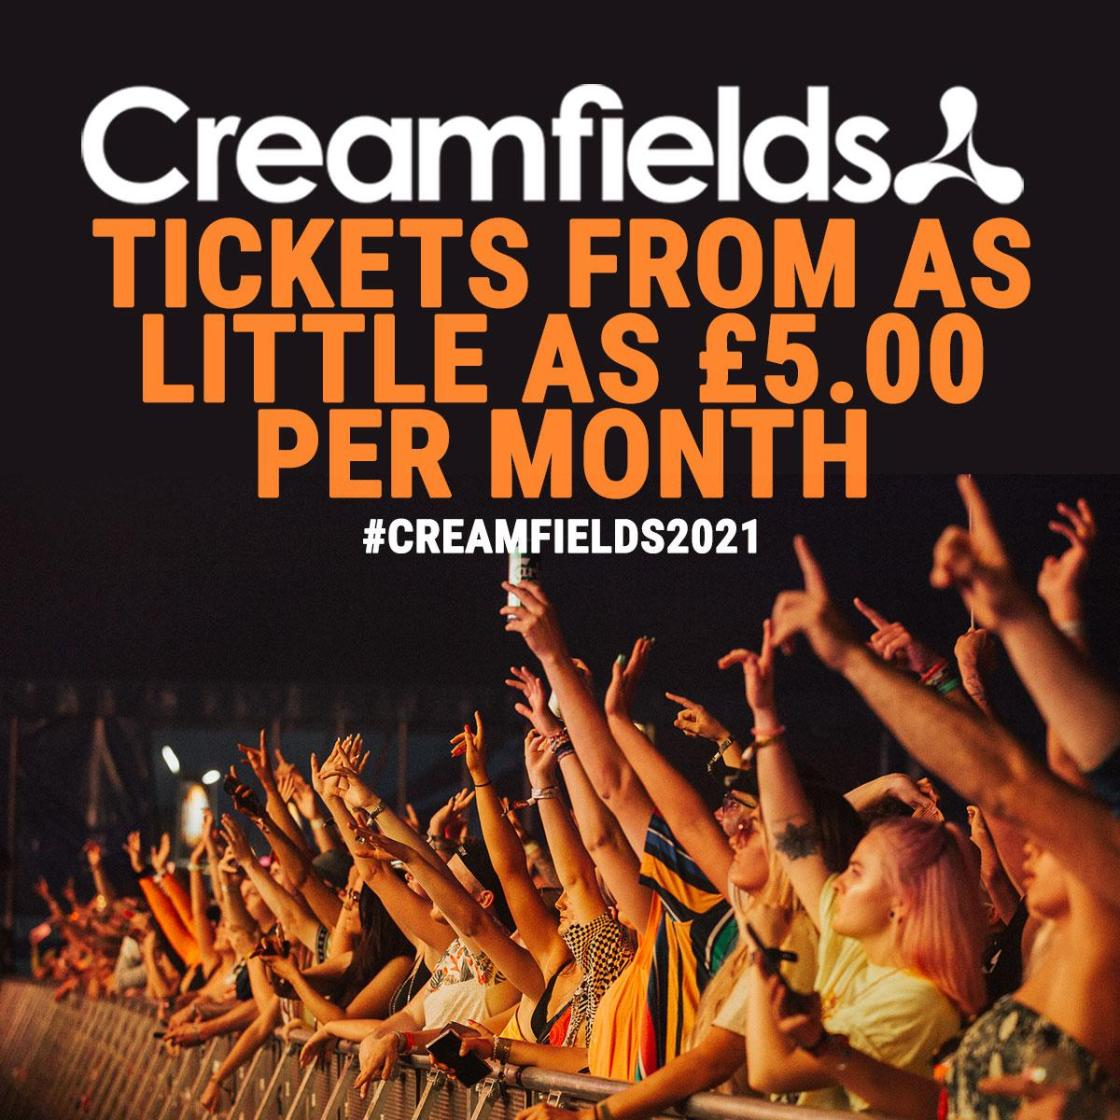 Is there anything better than being down the front at #Creamfields? We think not...